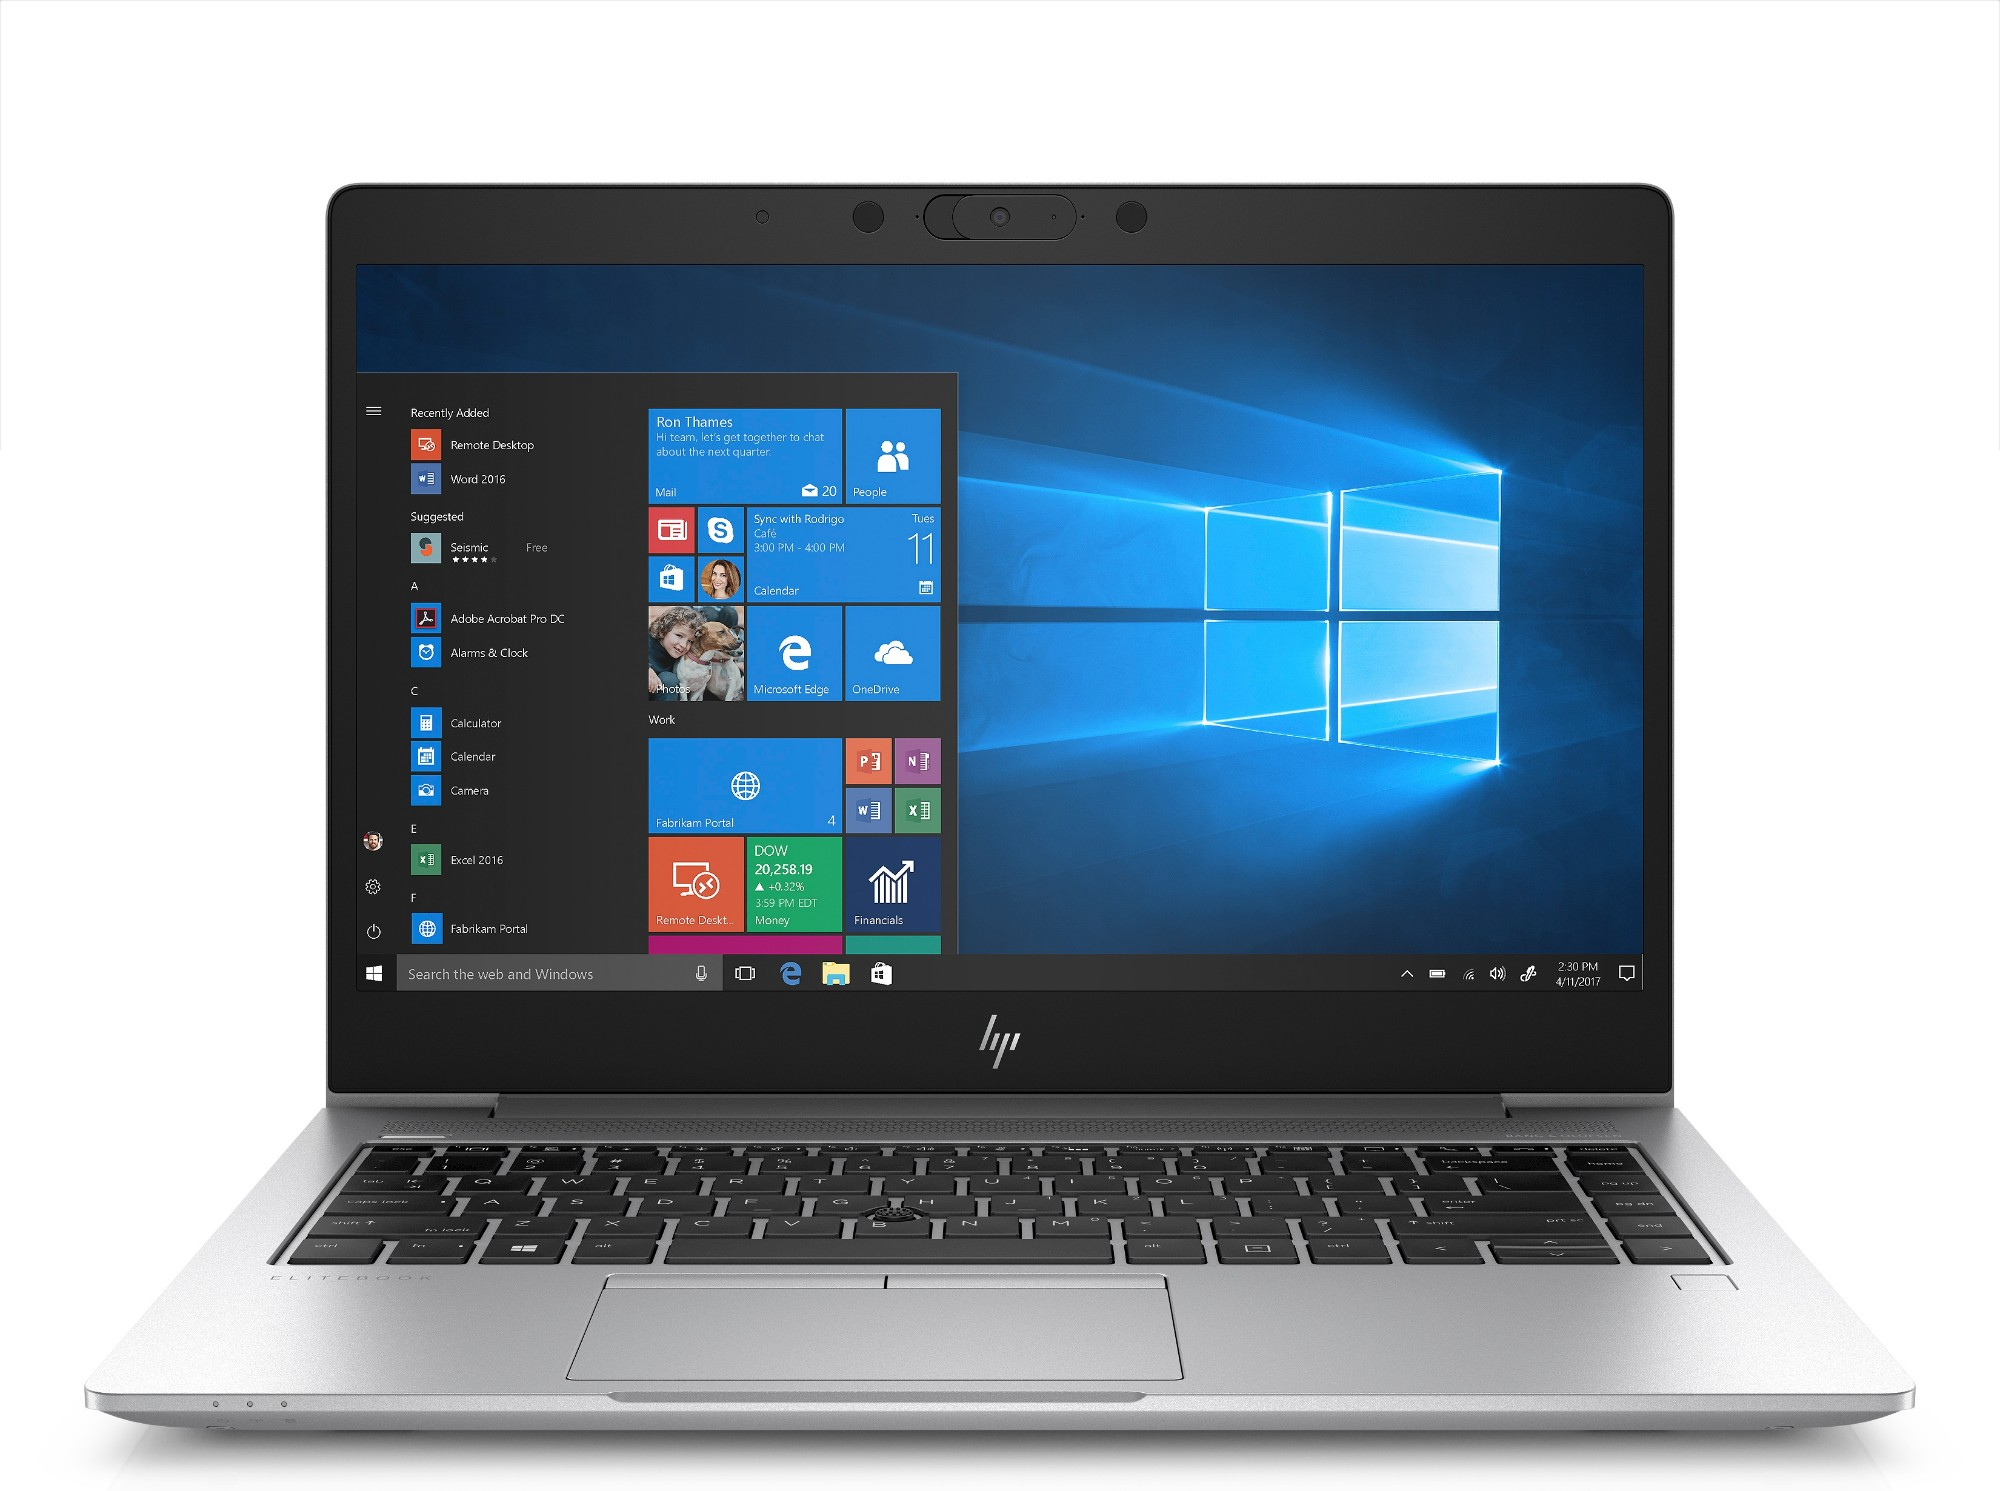 "HP EliteBook 745 G6 Notebook PC Portátil Plata 35,6 cm (14"") 1920 x 1080 Pixeles Pantalla táctil AMD Ryzen 5 PRO 8 GB DDR4-SDRAM 512 GB SSD Wi-Fi 5 (802.11ac) Windows 10 Pro"